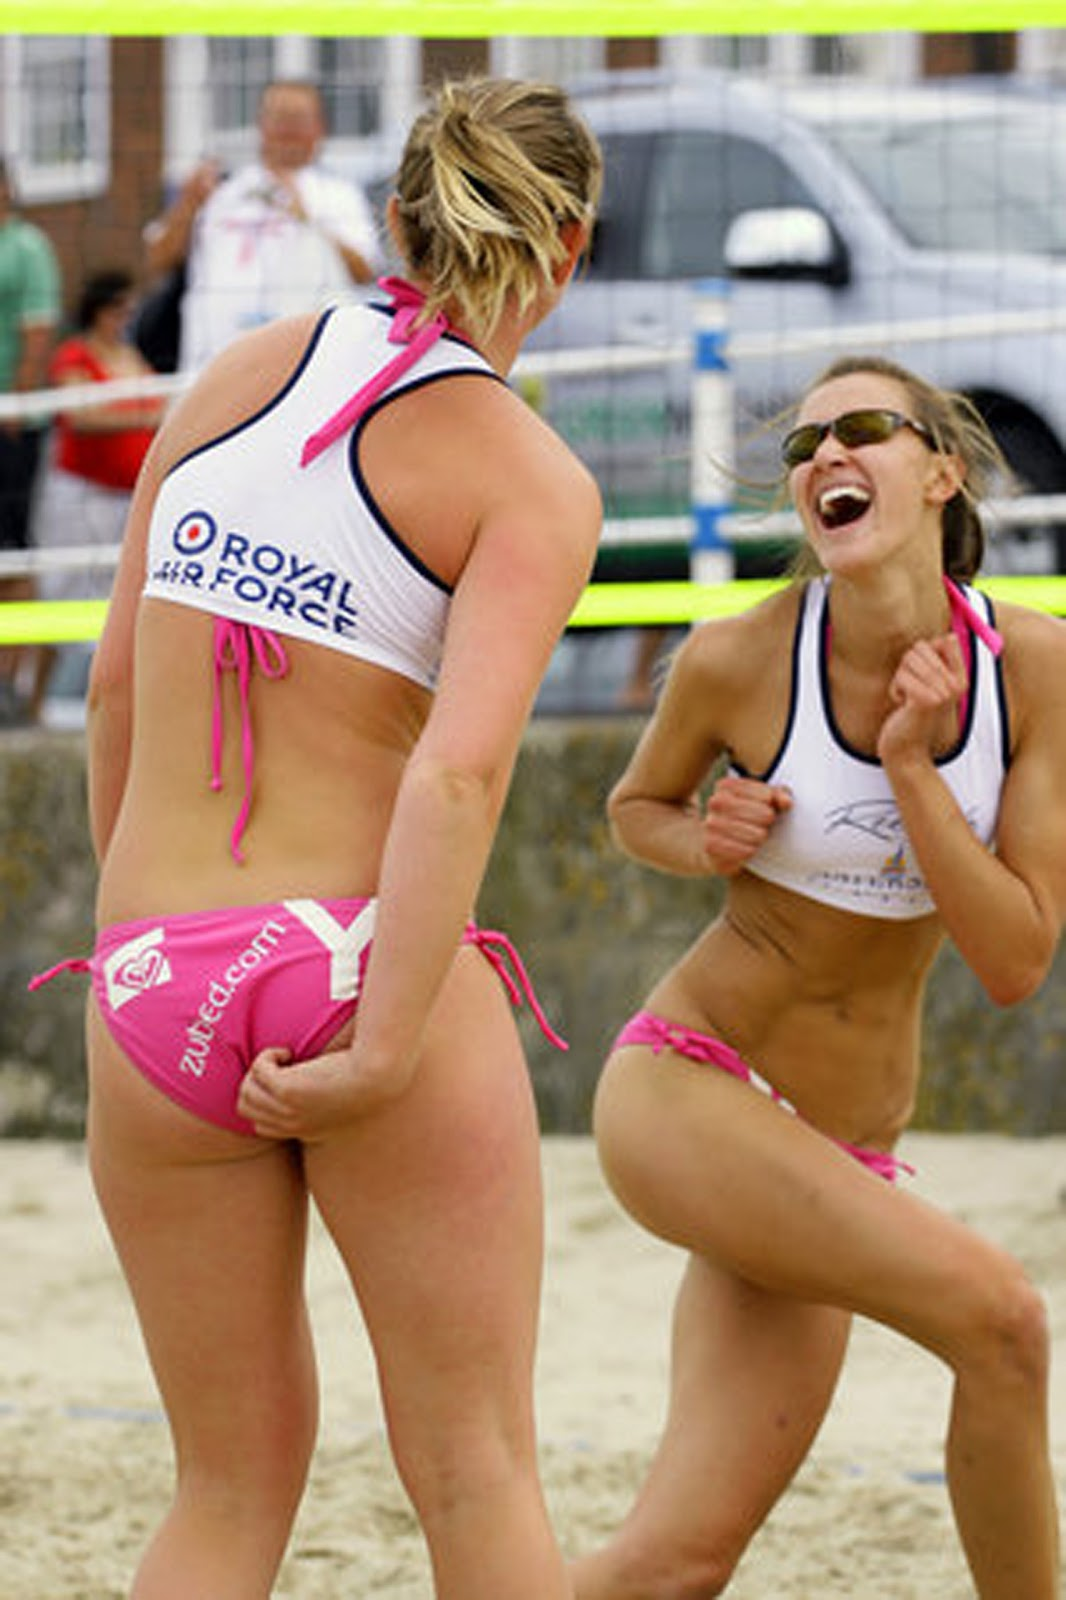 London Olympic Wallpaper Beach Volleyball Pictures-4910